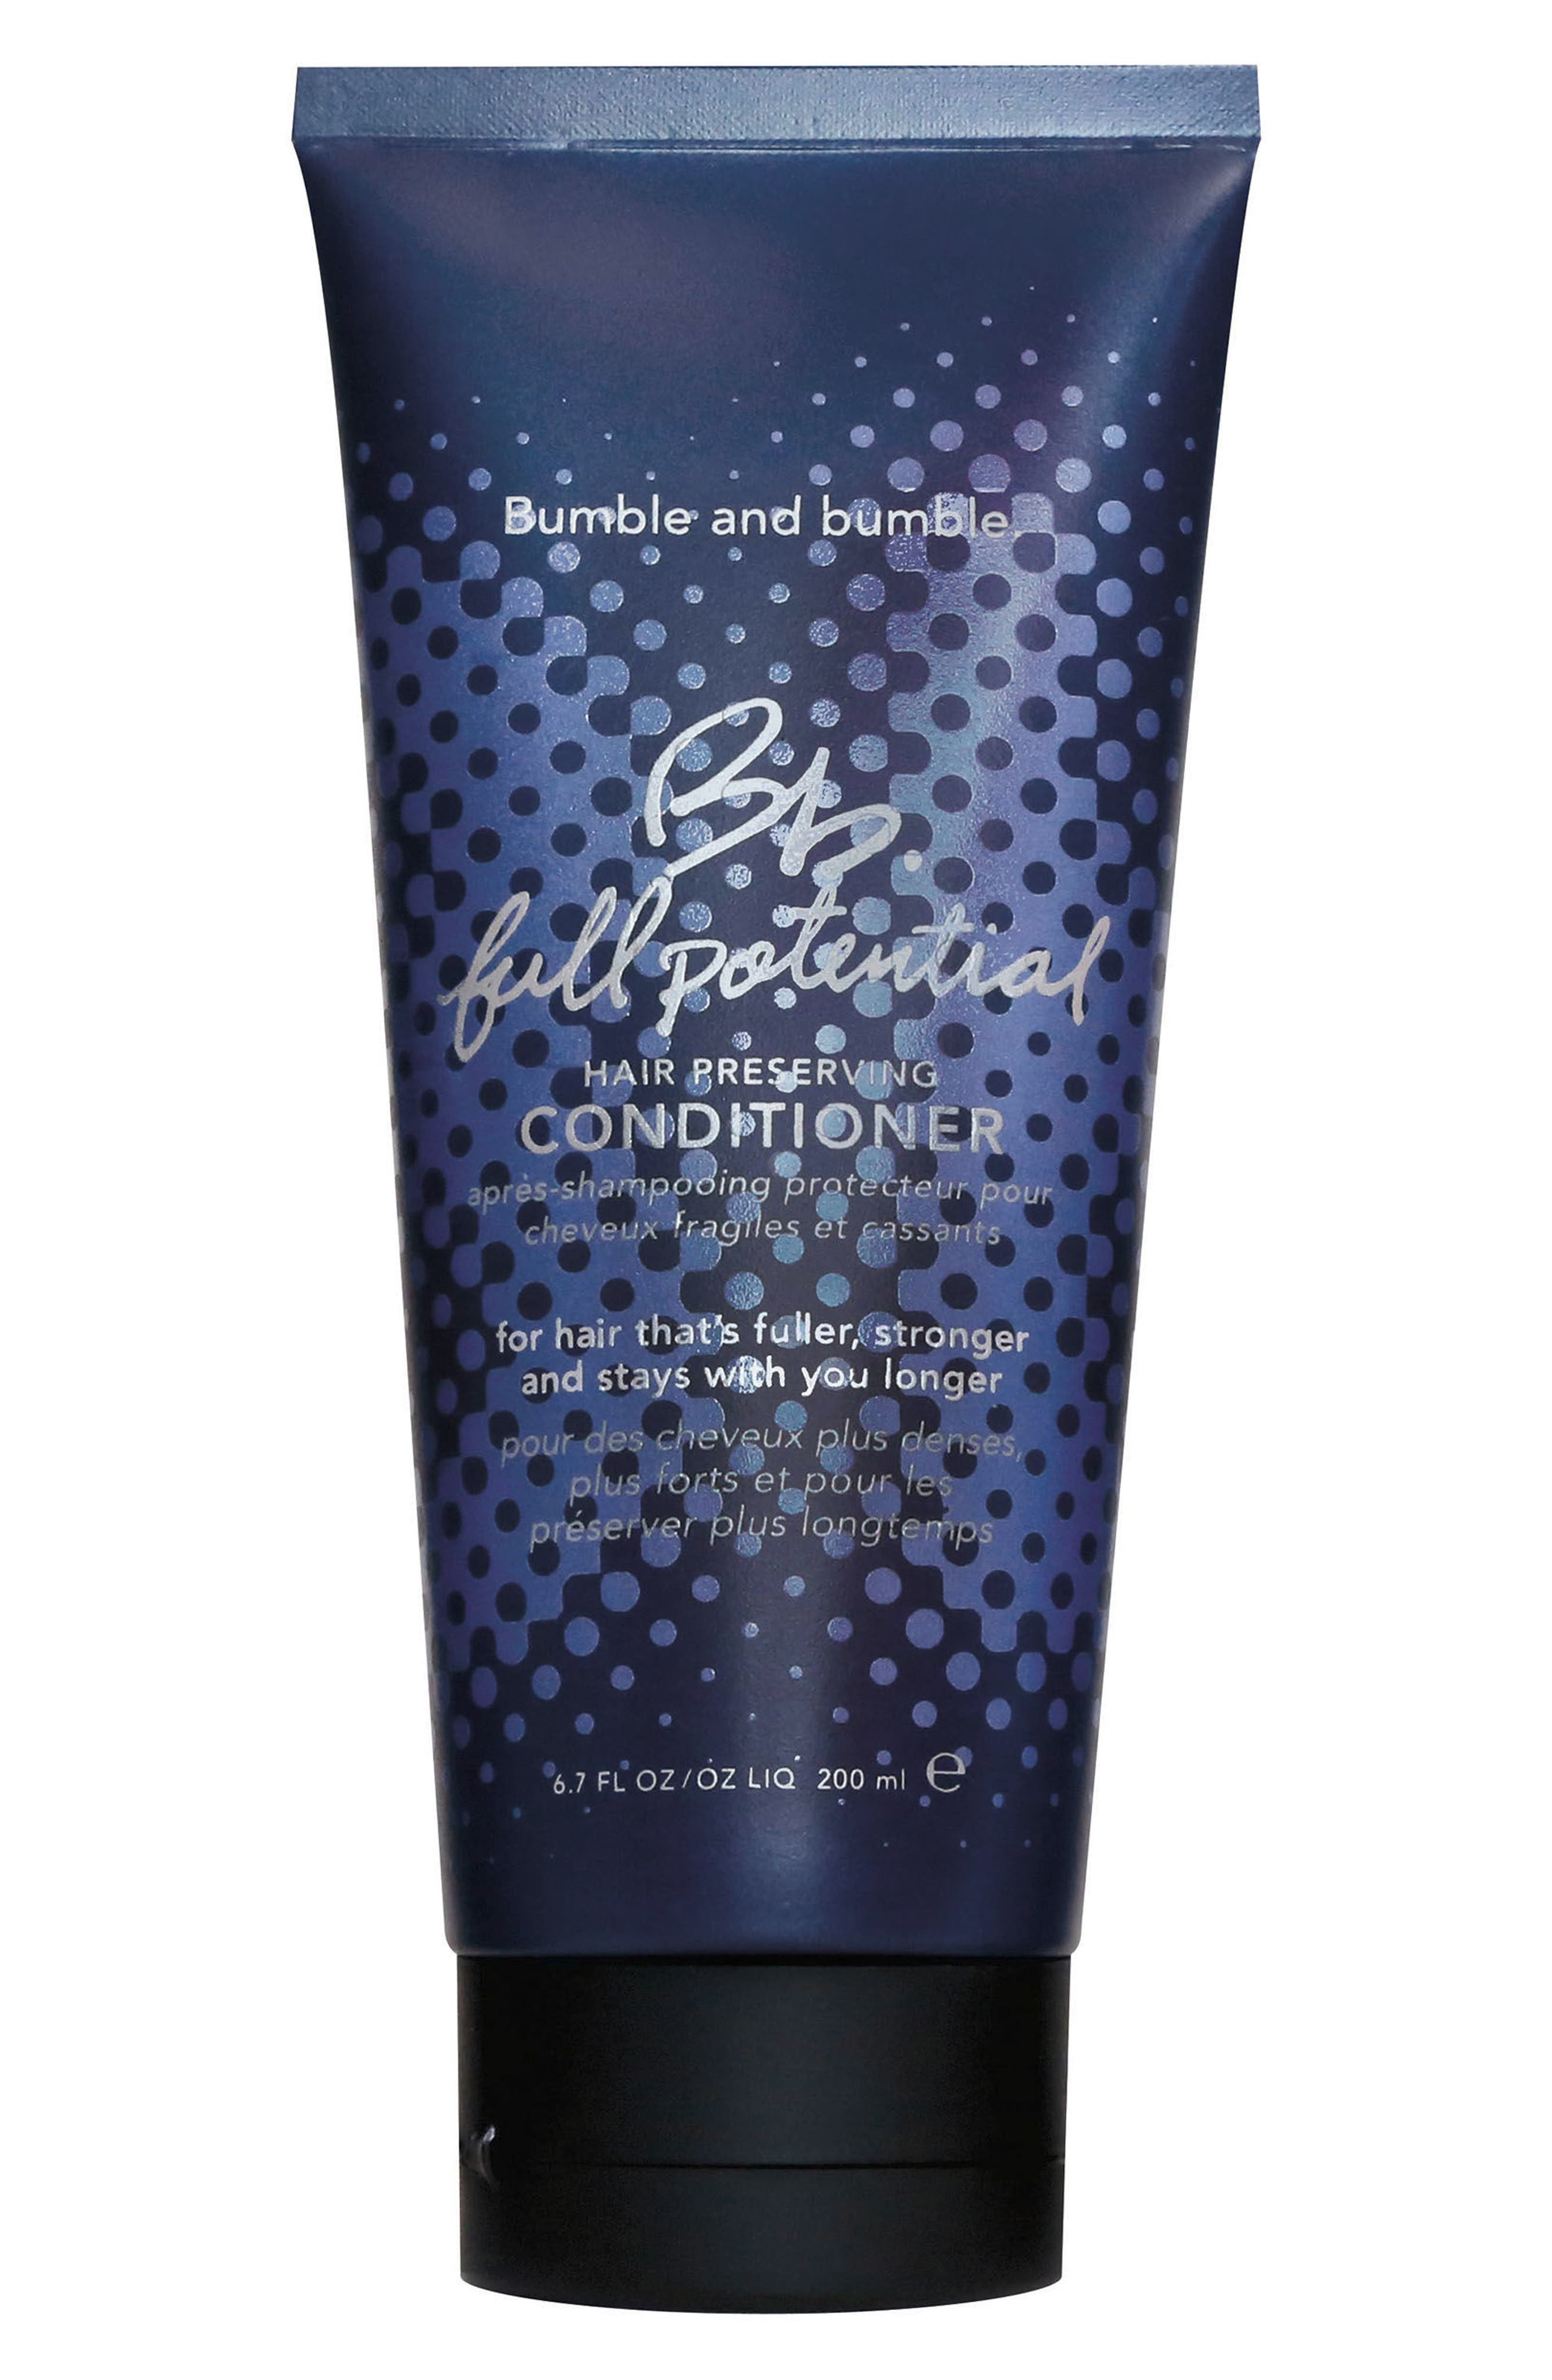 Alternate Image 1 Selected - Bumble and bumble Full Potential Conditioner